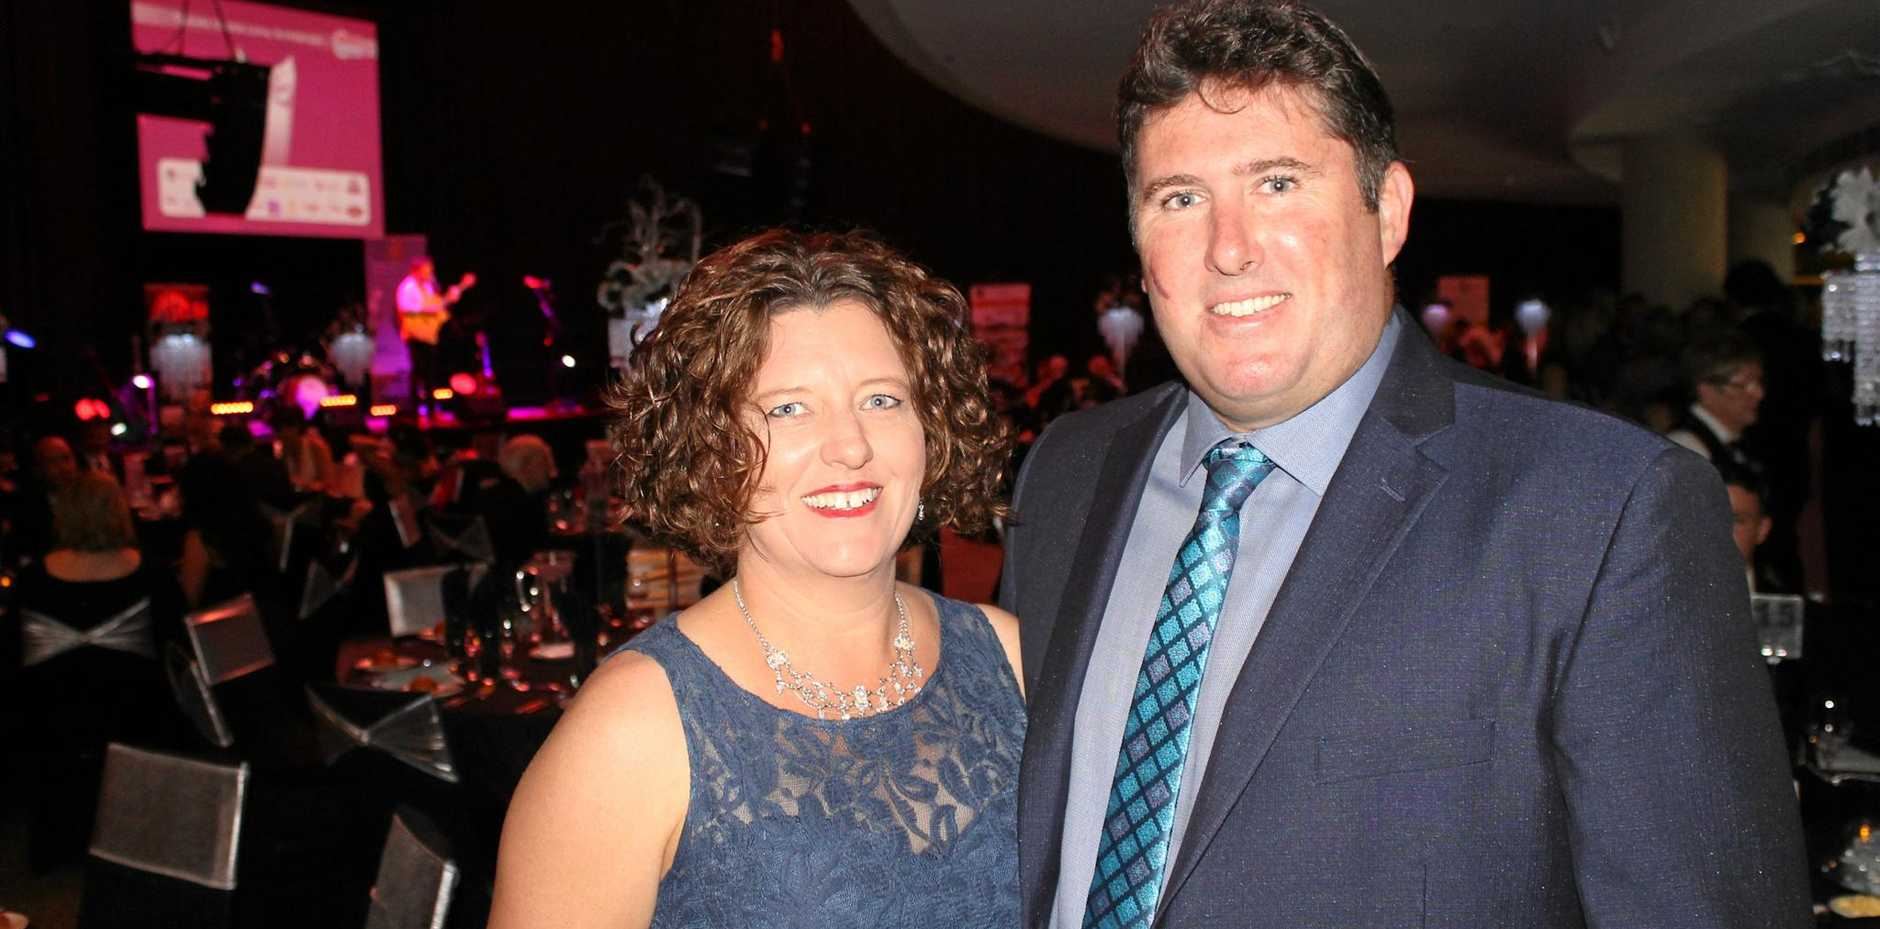 Tanya Williams and Gerard Williams from West Mackay at the Mackay Mayor's Charity Ball.